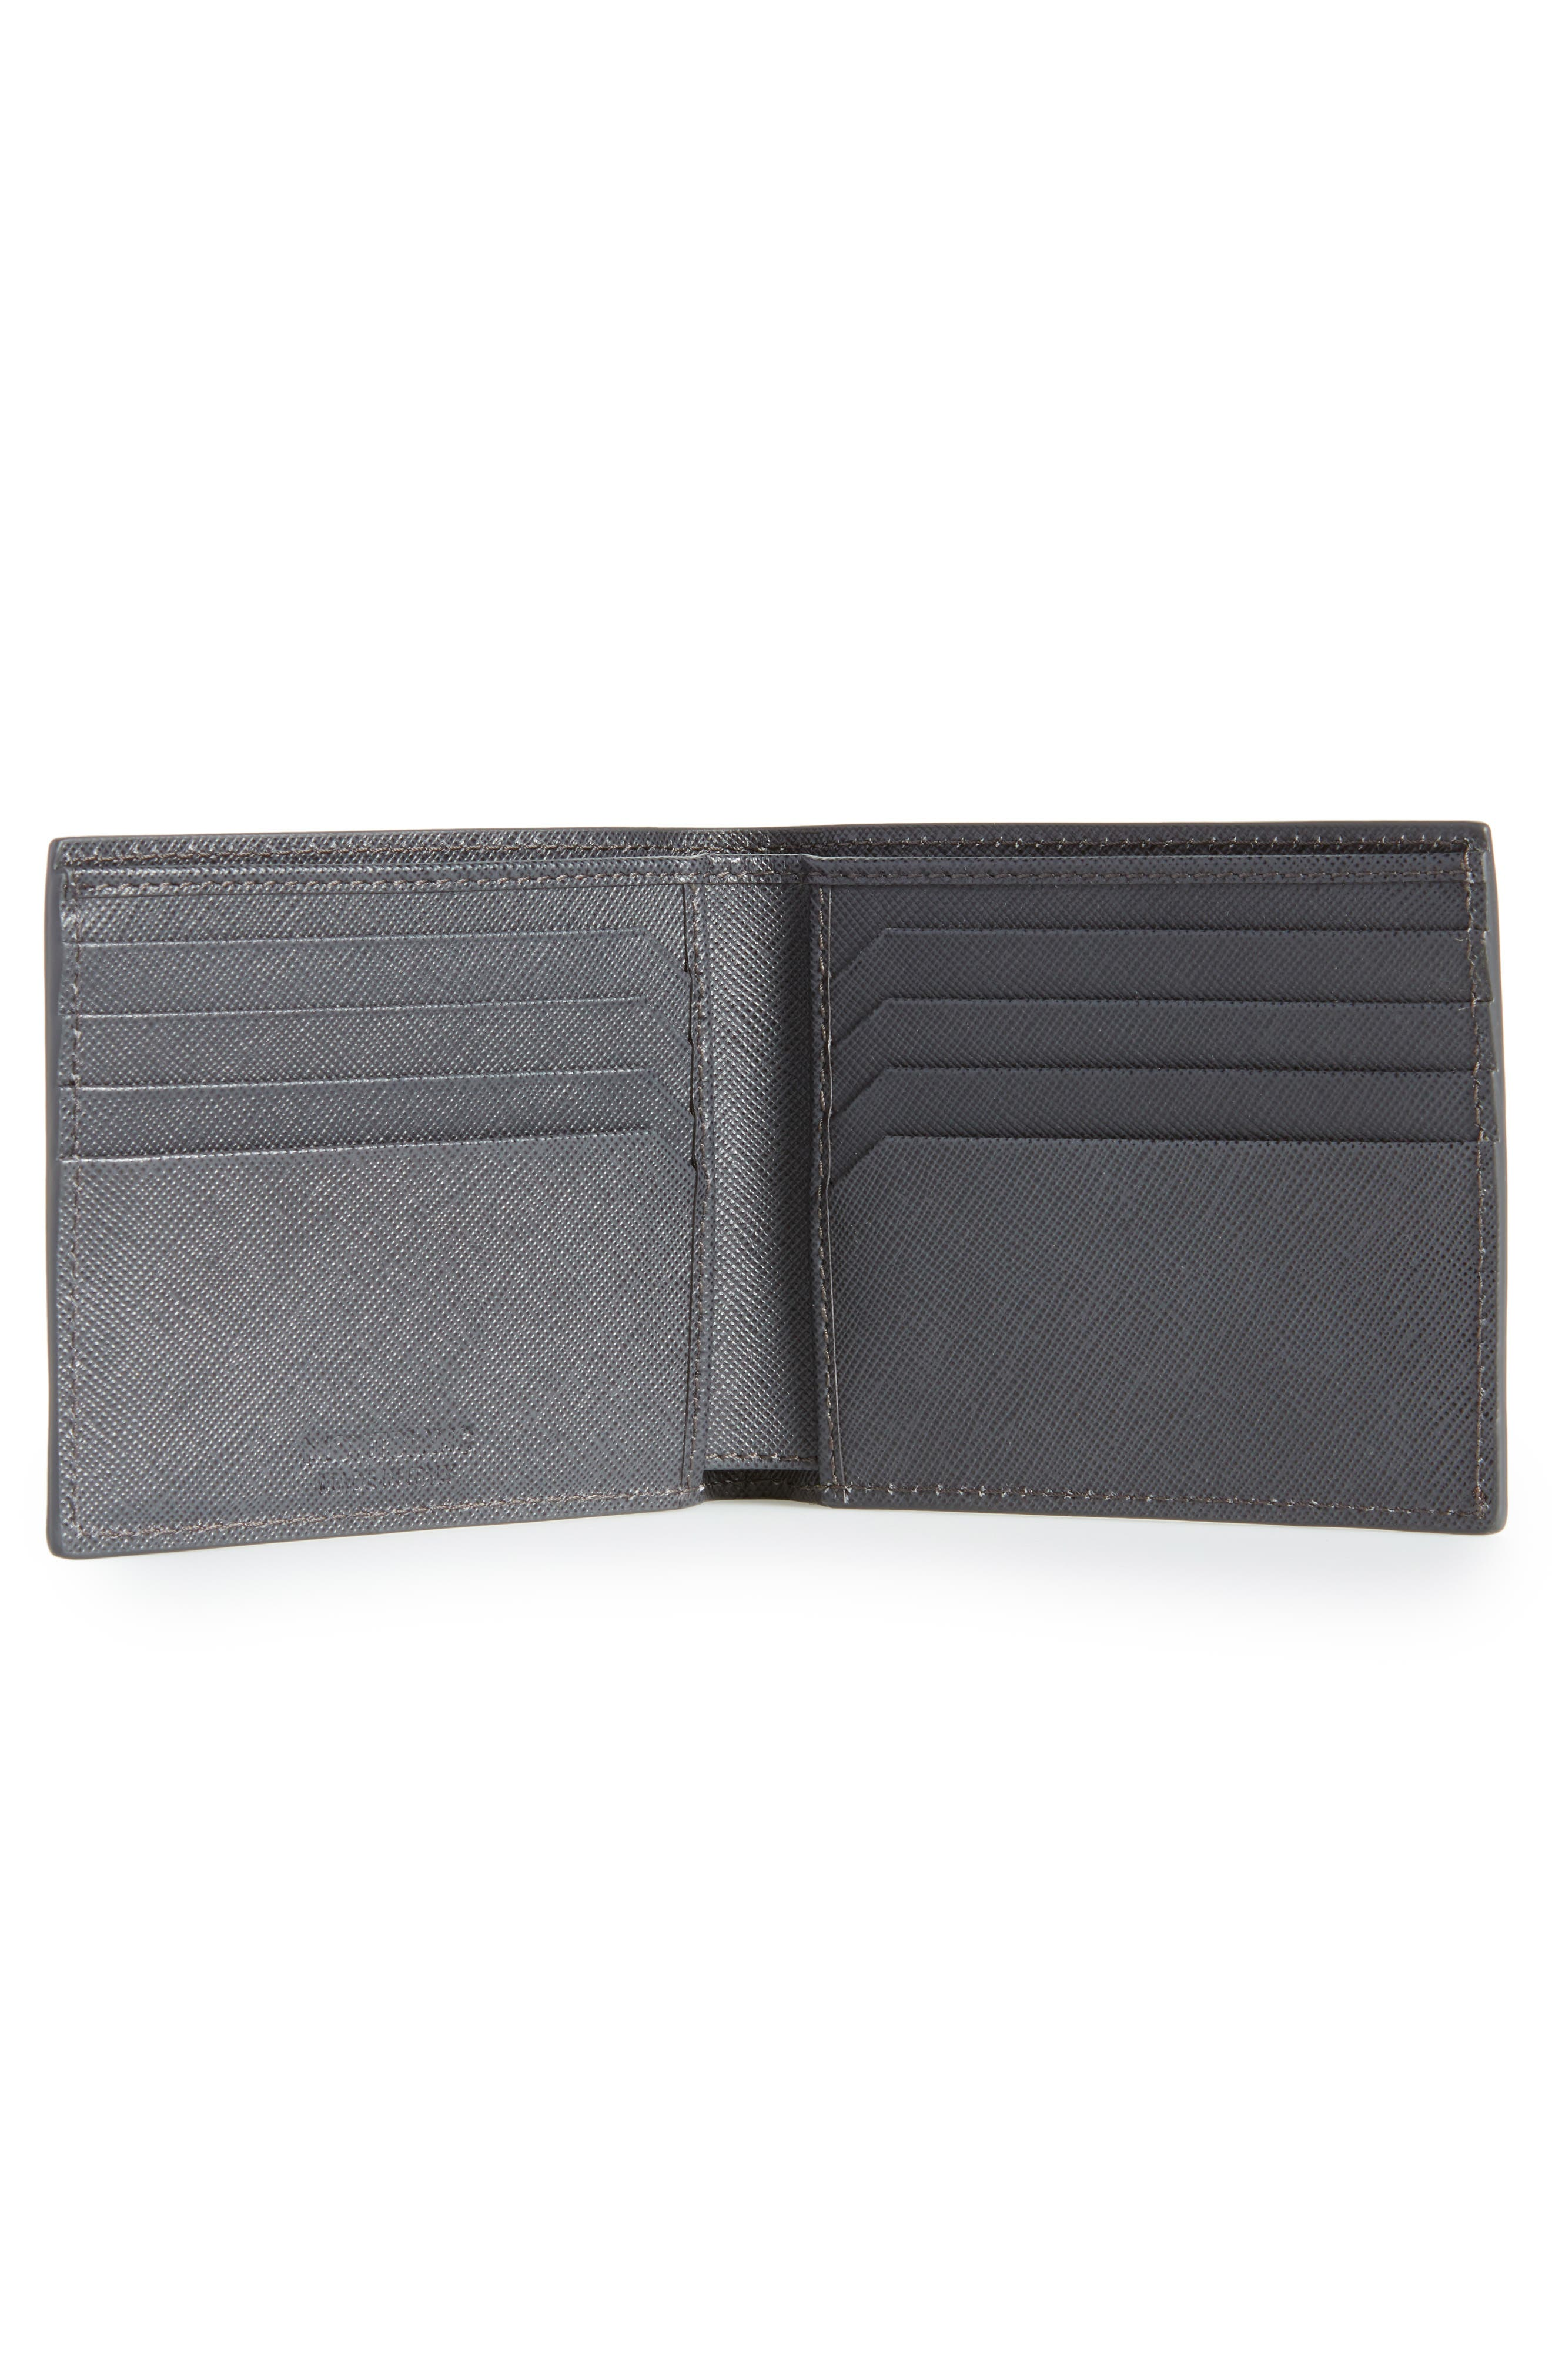 MONTBLANC, Sartorial Leather Bifold Wallet, Alternate thumbnail 2, color, 020